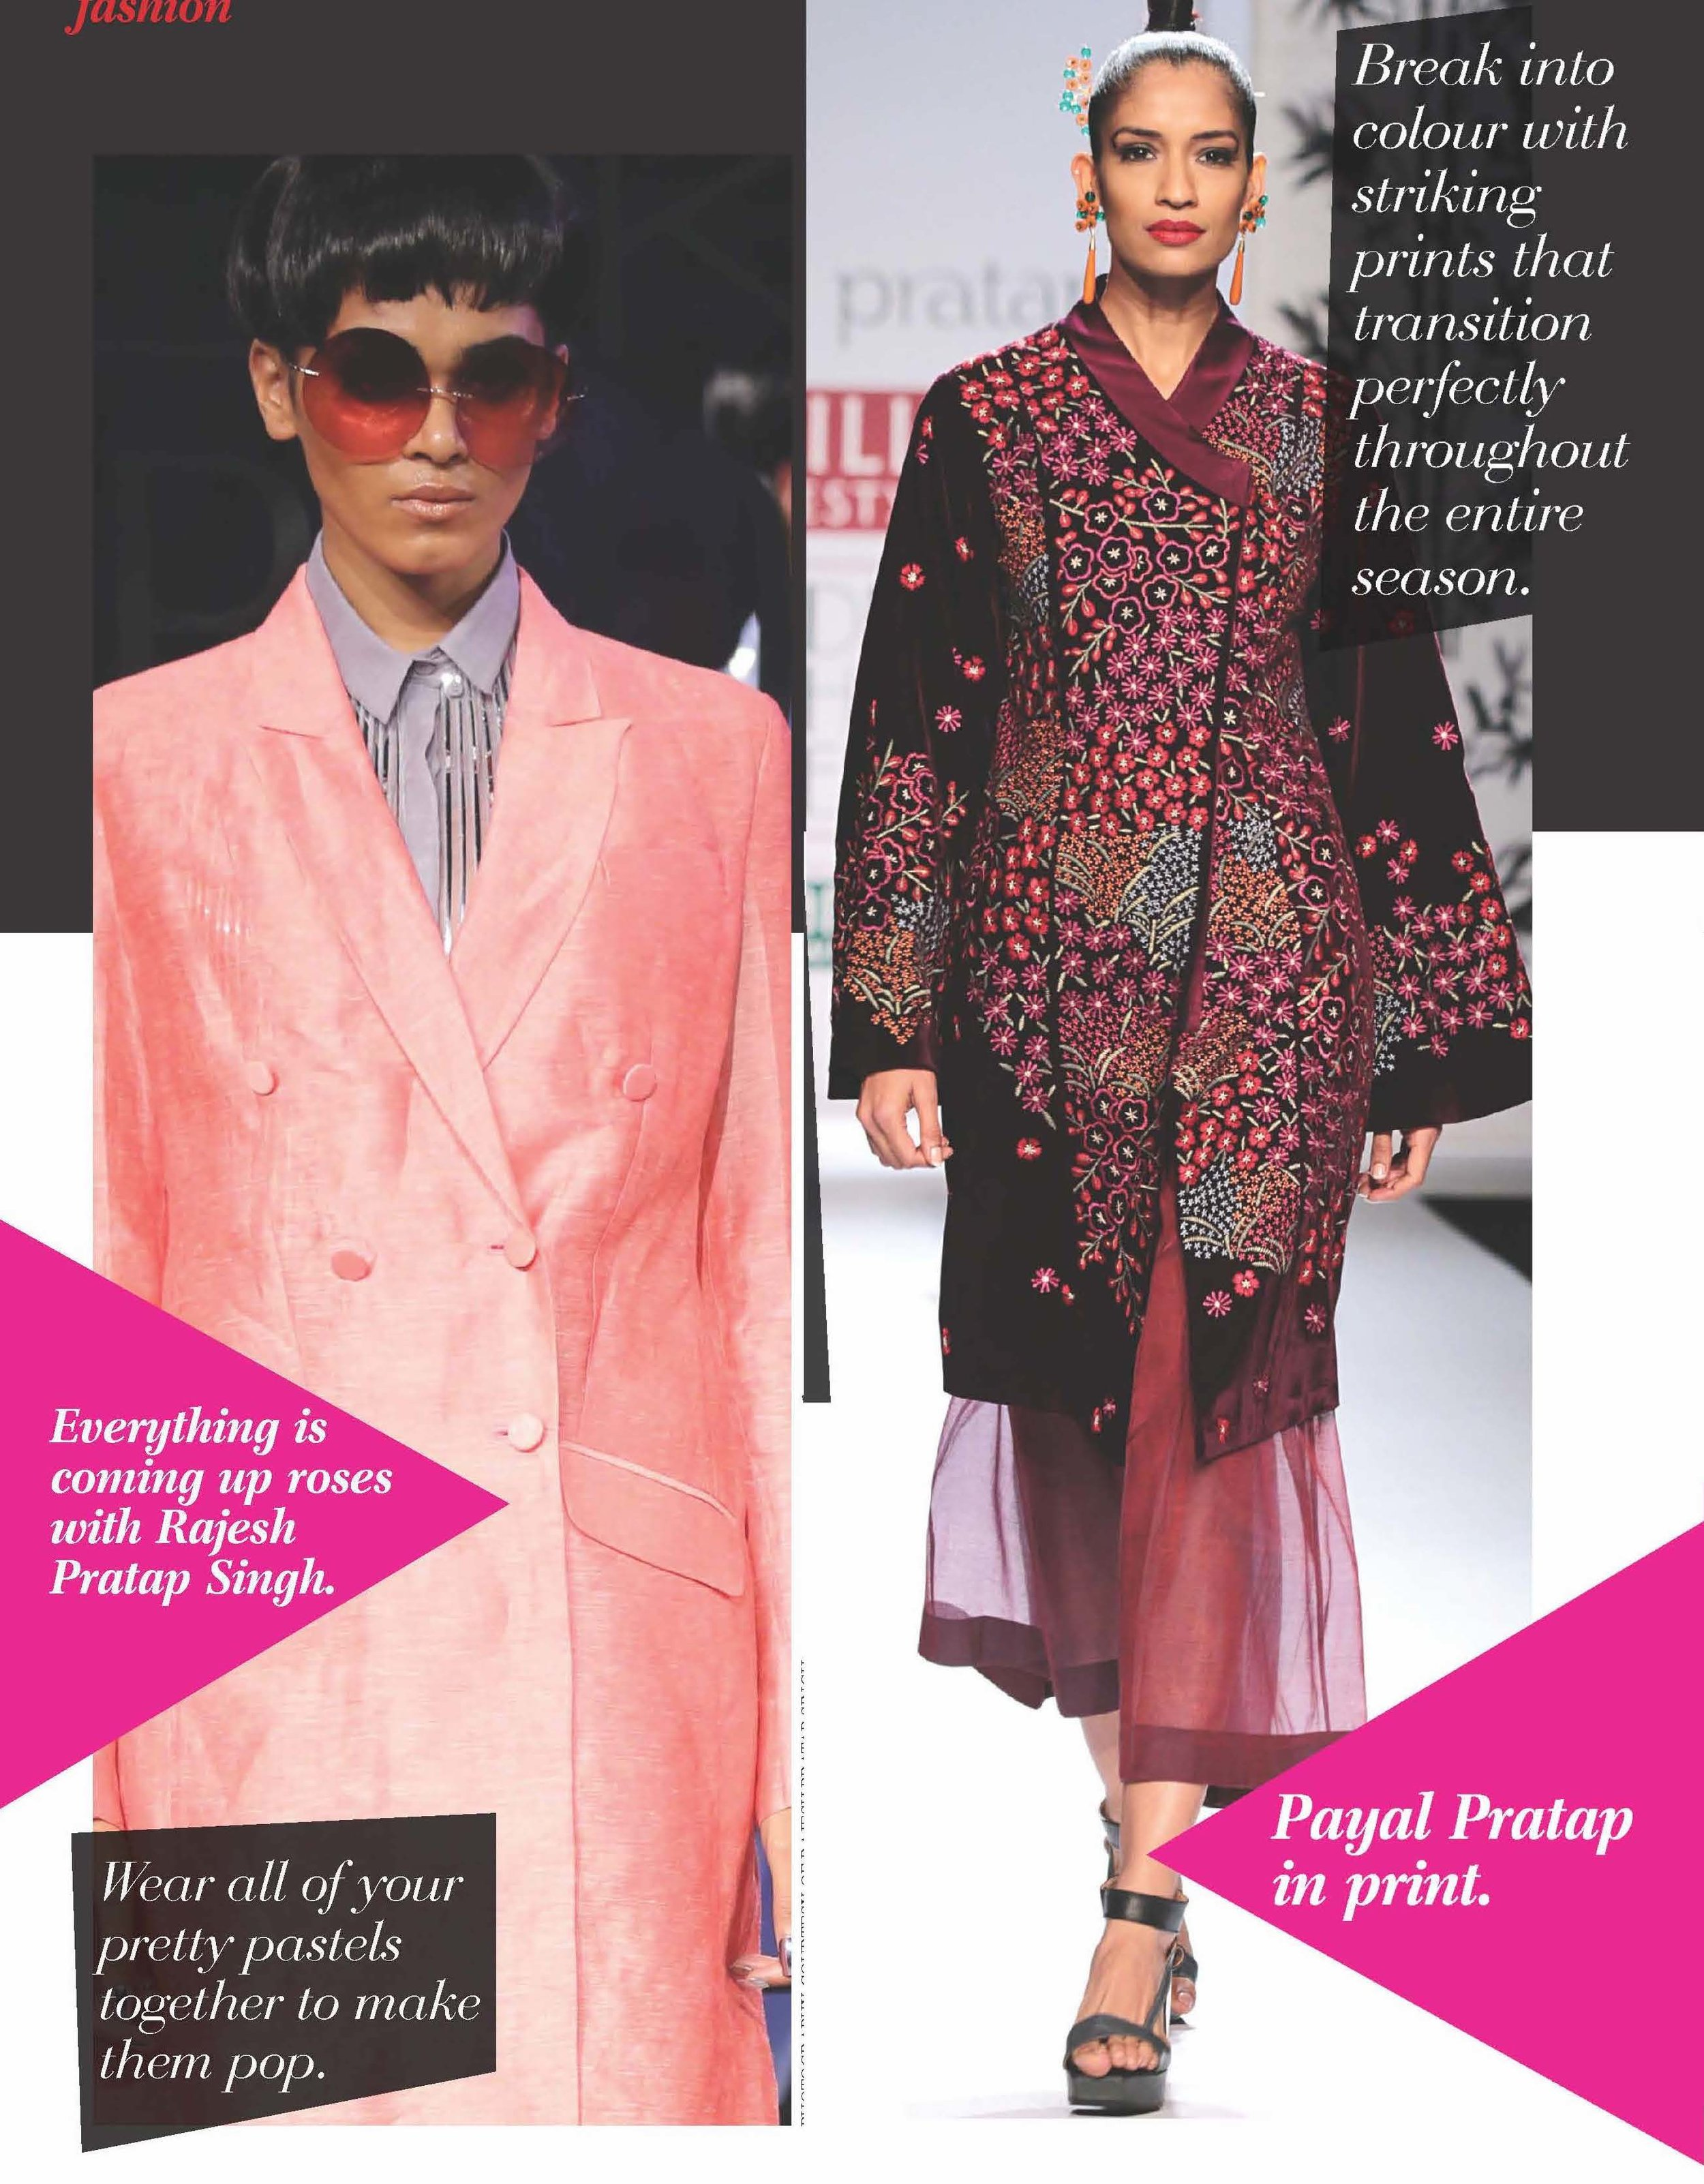 oct2014 fashion_Page_16.jpg